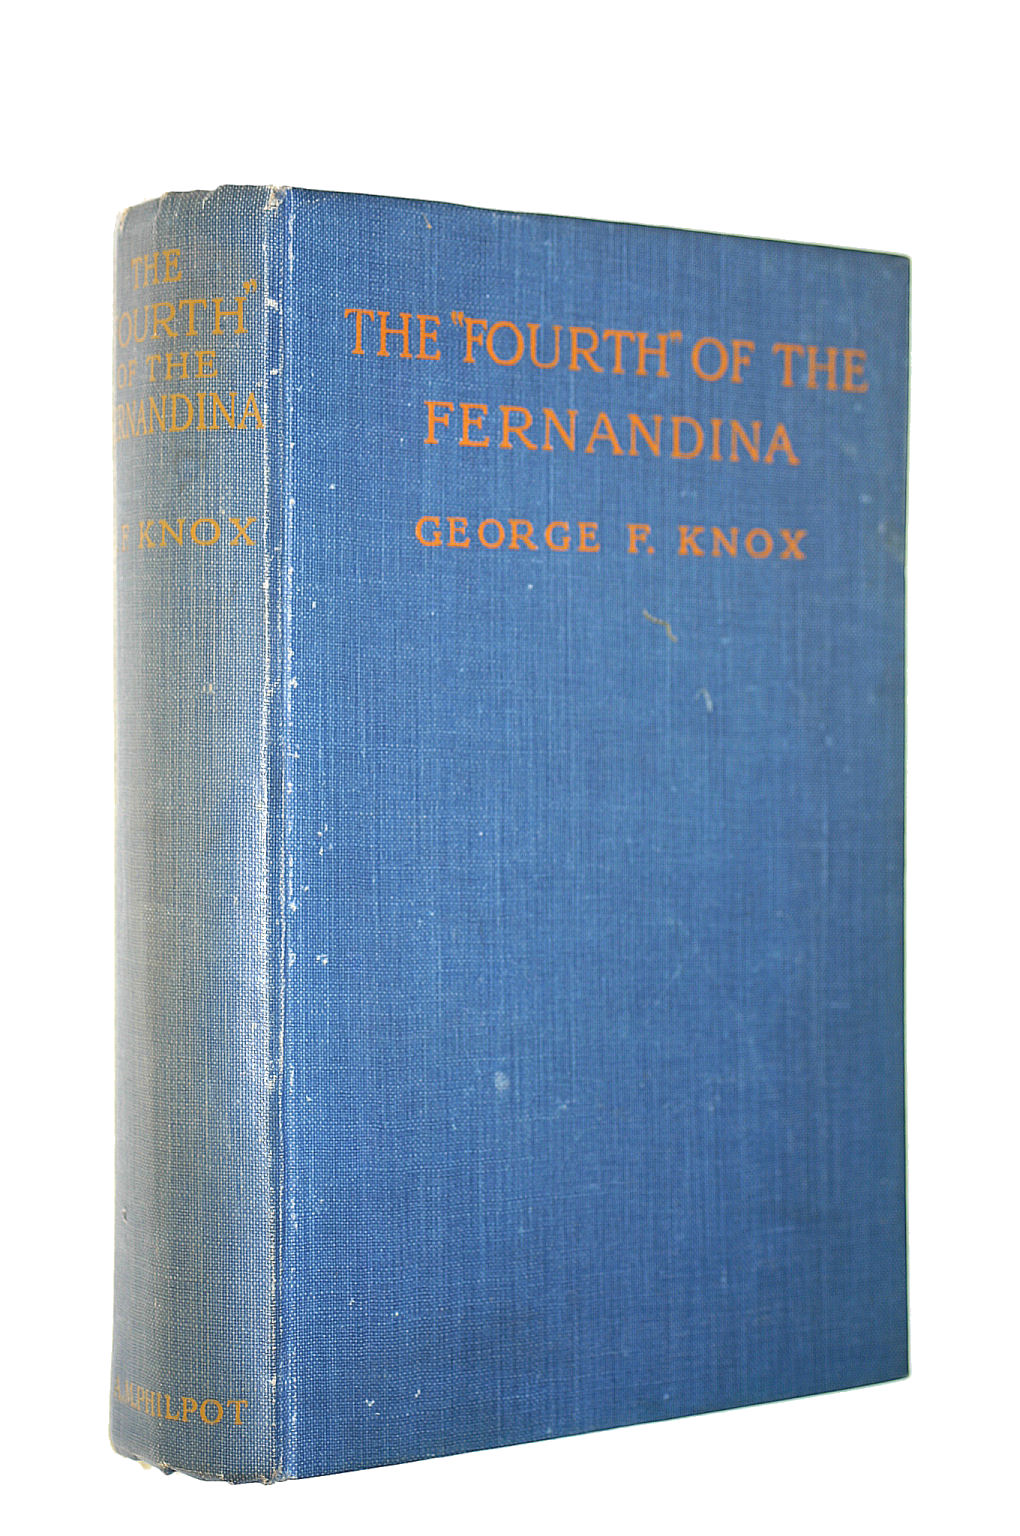 Image for The 'Fourth' of the Fernandina